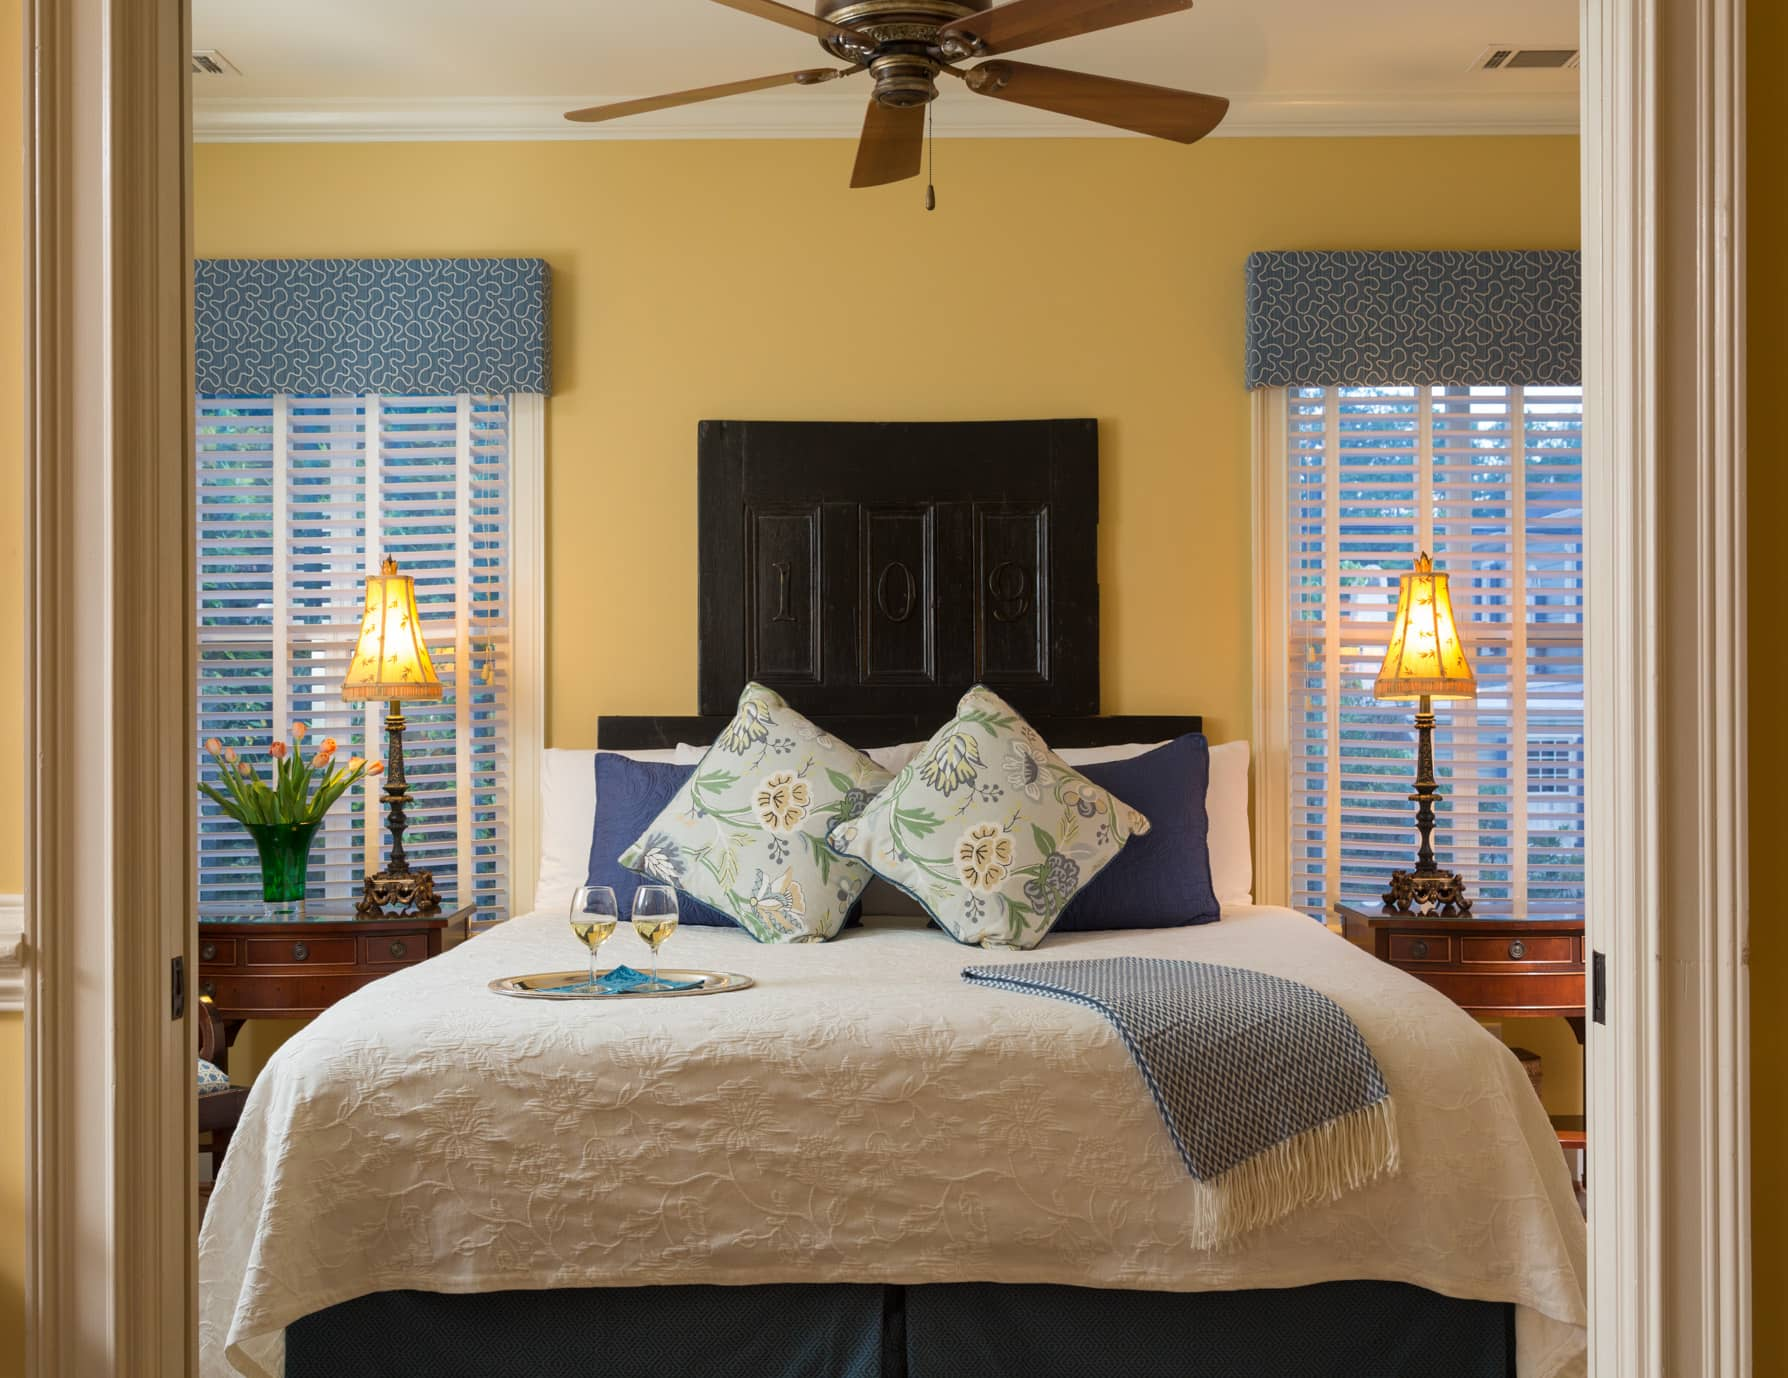 King size bed in a bedroom with a ceiling fan and two end tables